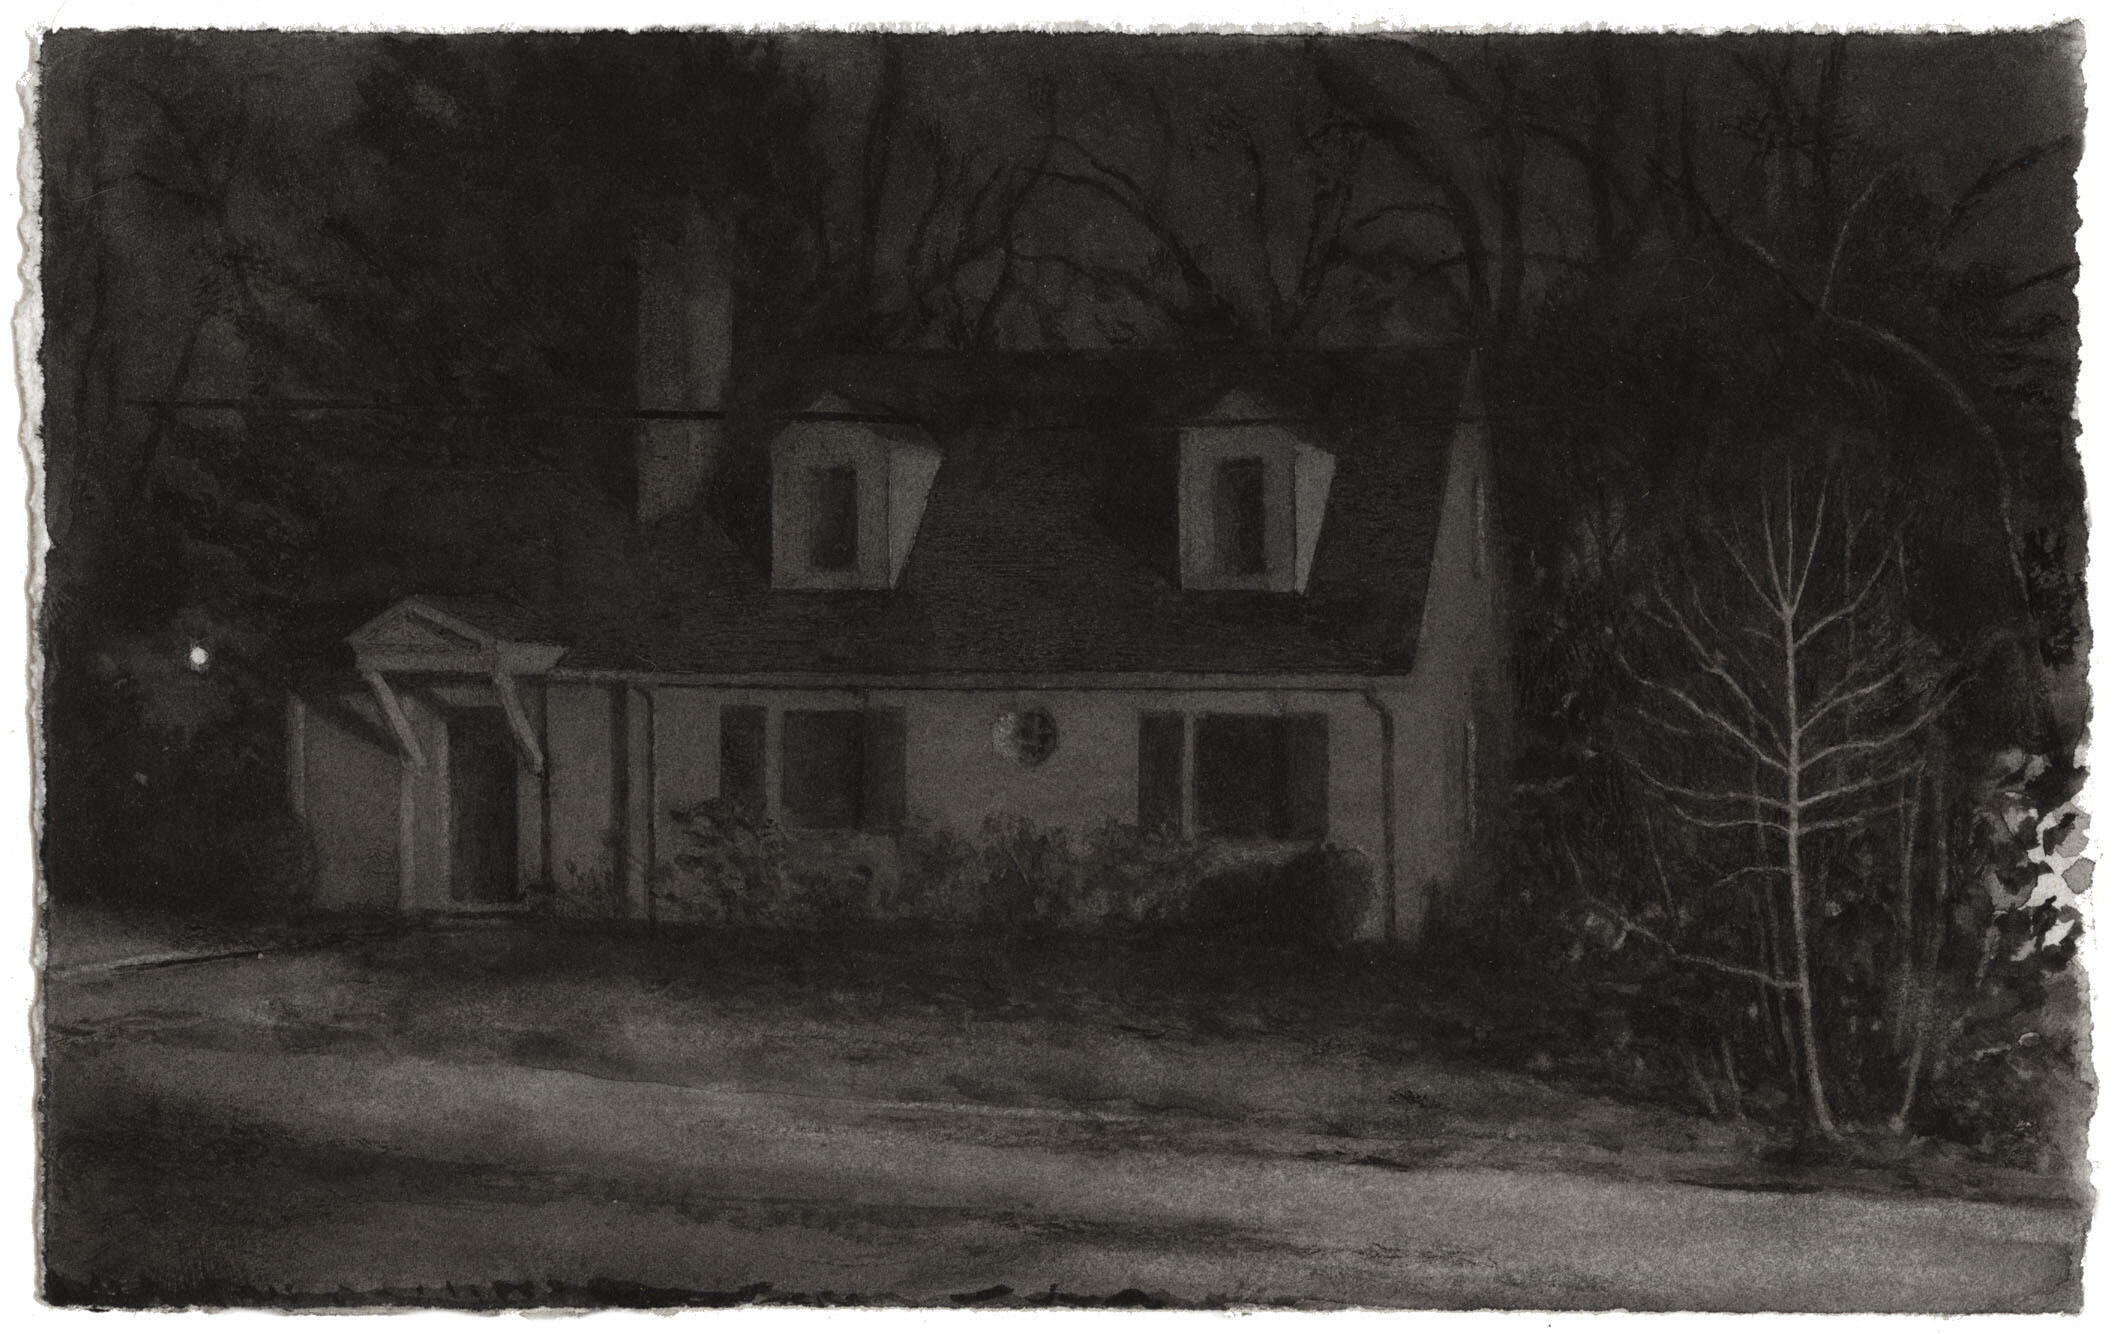 House in Black image